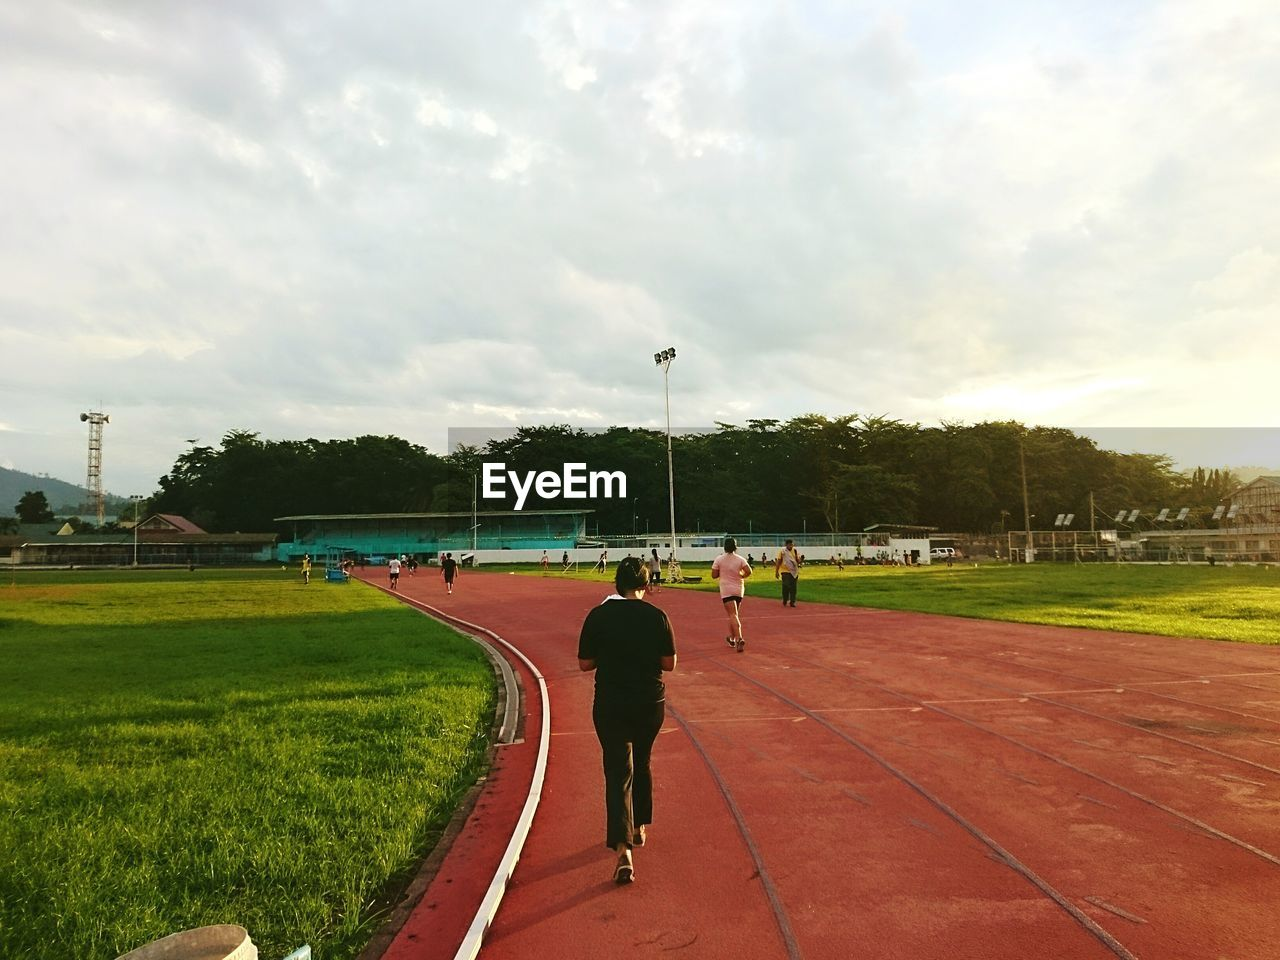 sport, cloud - sky, sky, real people, men, playing field, day, tree, lifestyles, grass, full length, exercising, competition, healthy lifestyle, one person, outdoors, playing, running track, sports track, sportsman, sports clothing, competitive sport, nature, city, people, adult, adults only